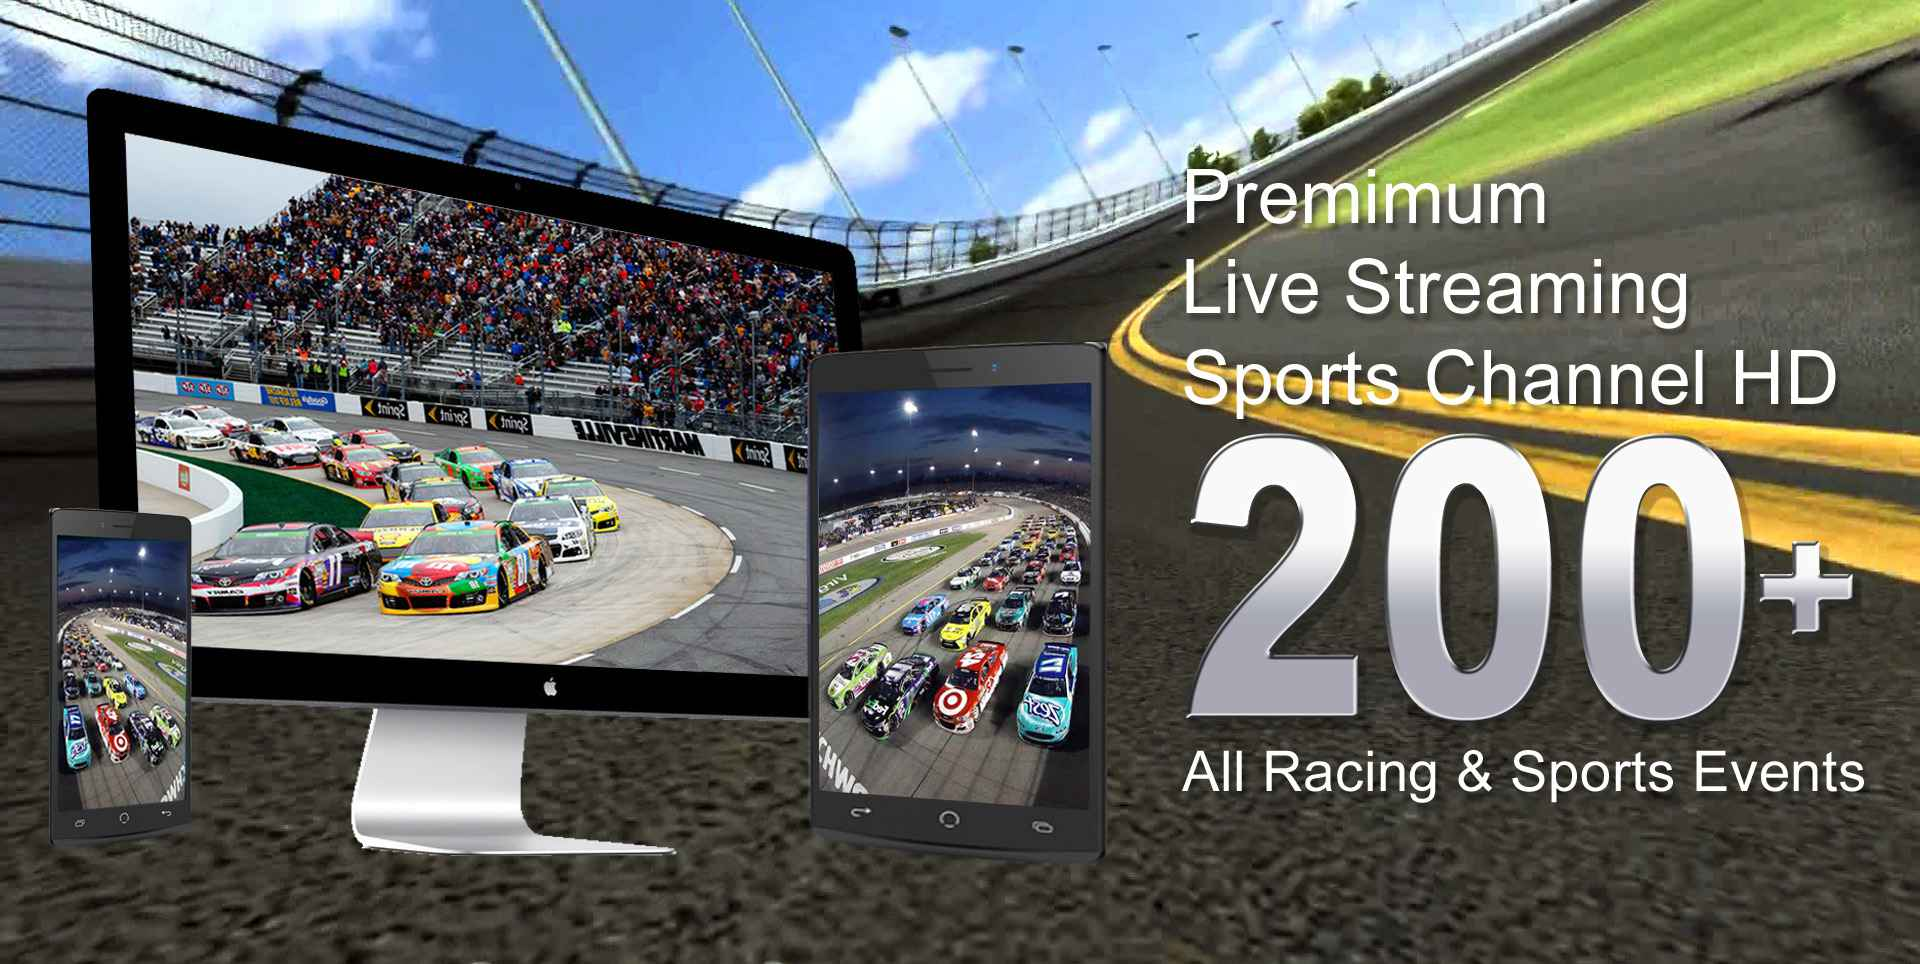 Sprint Cup Kansas Race 2015 Live Streaming